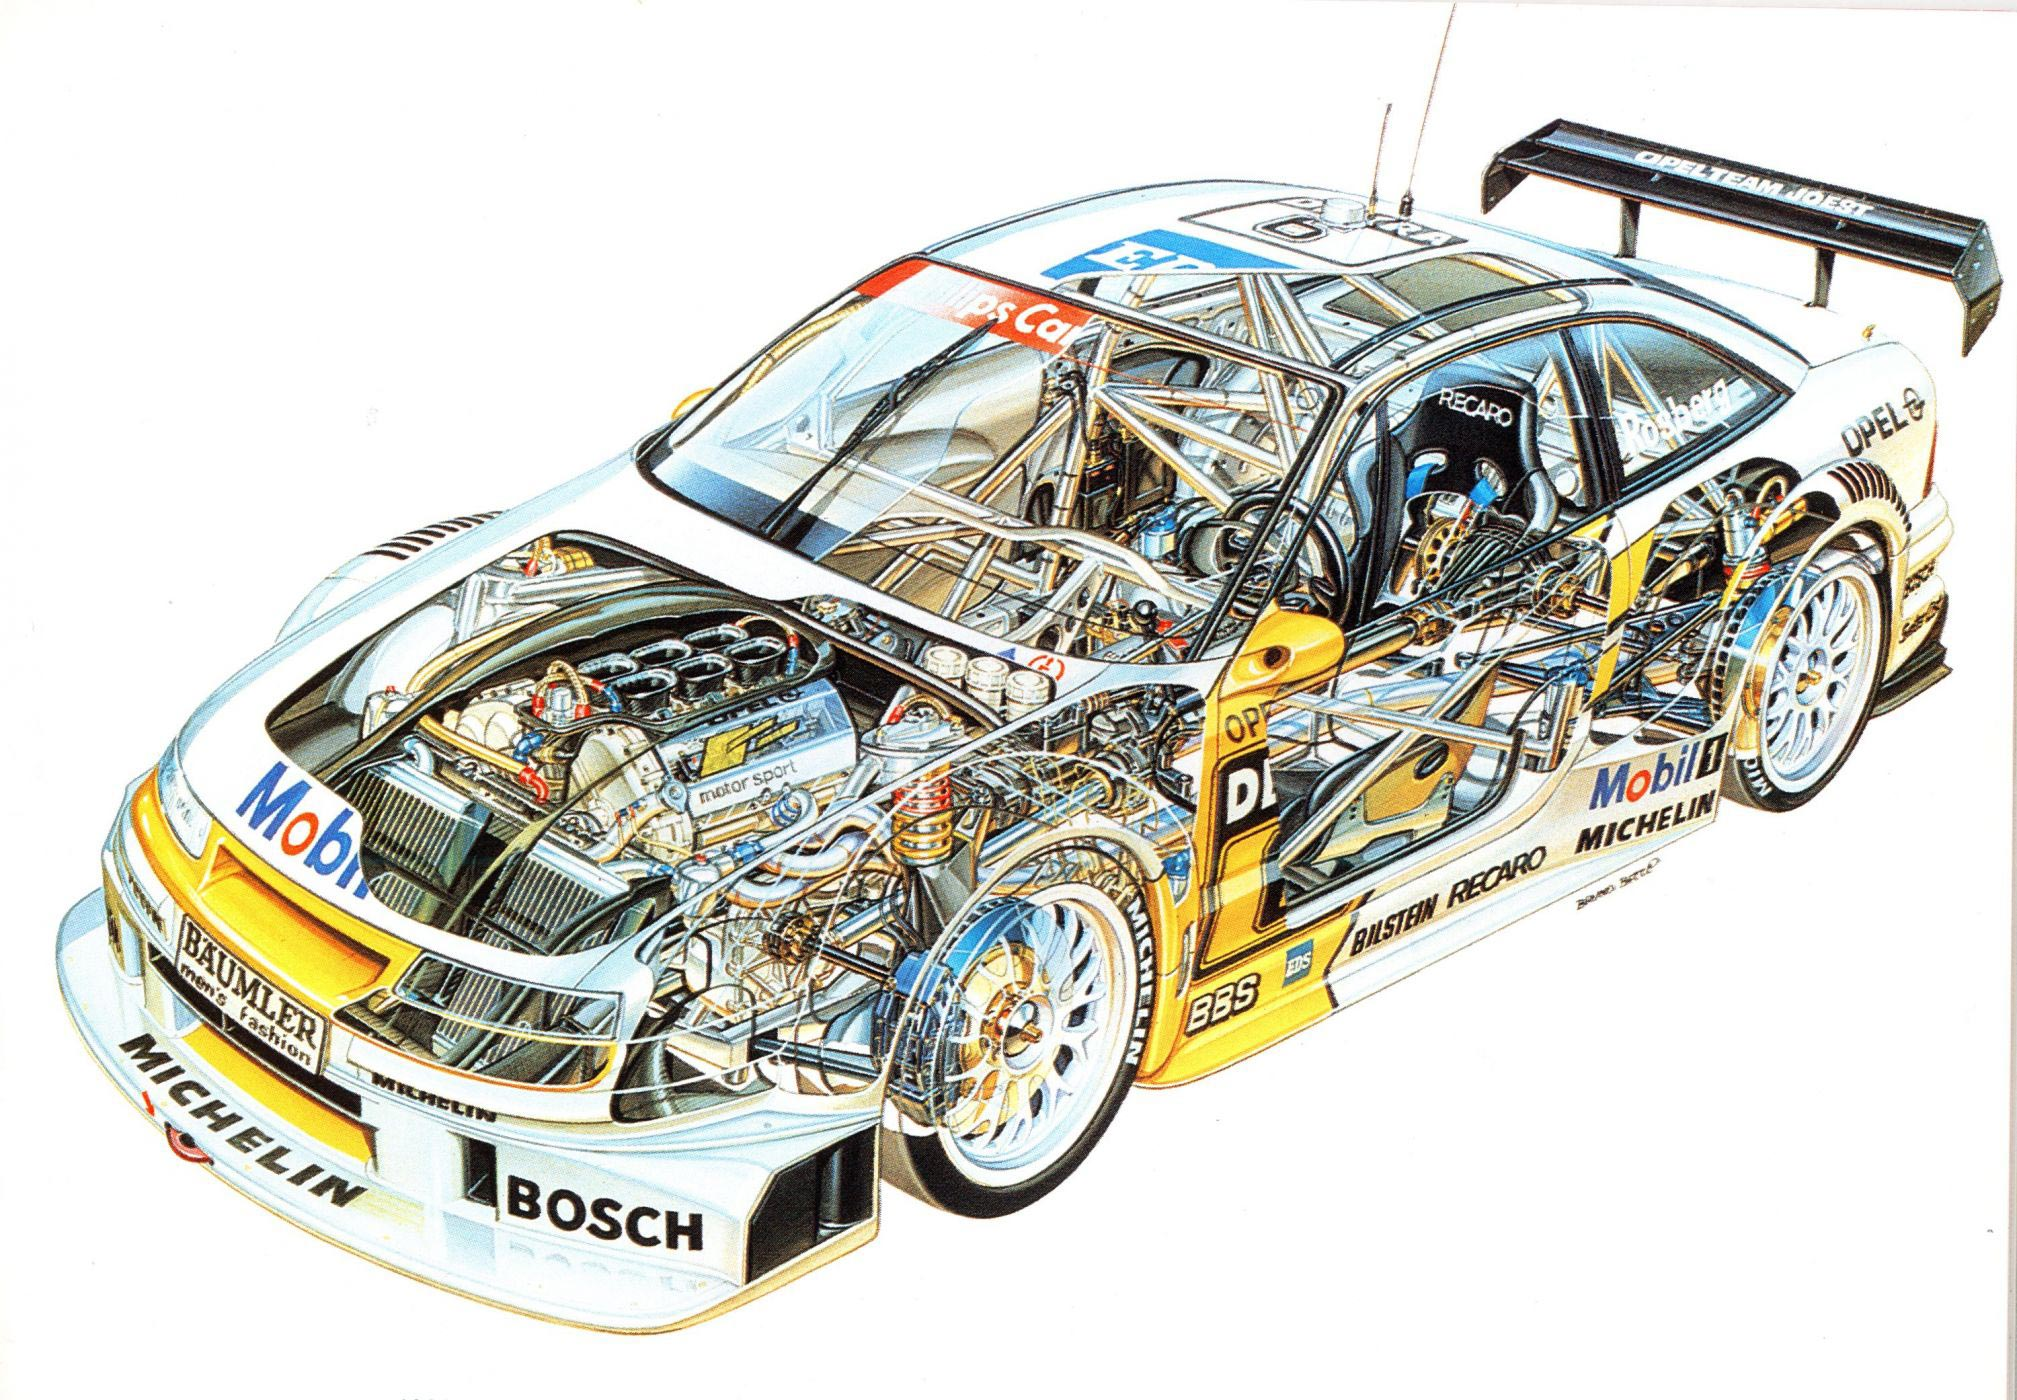 Opel Calibra DTM Race car cutaway